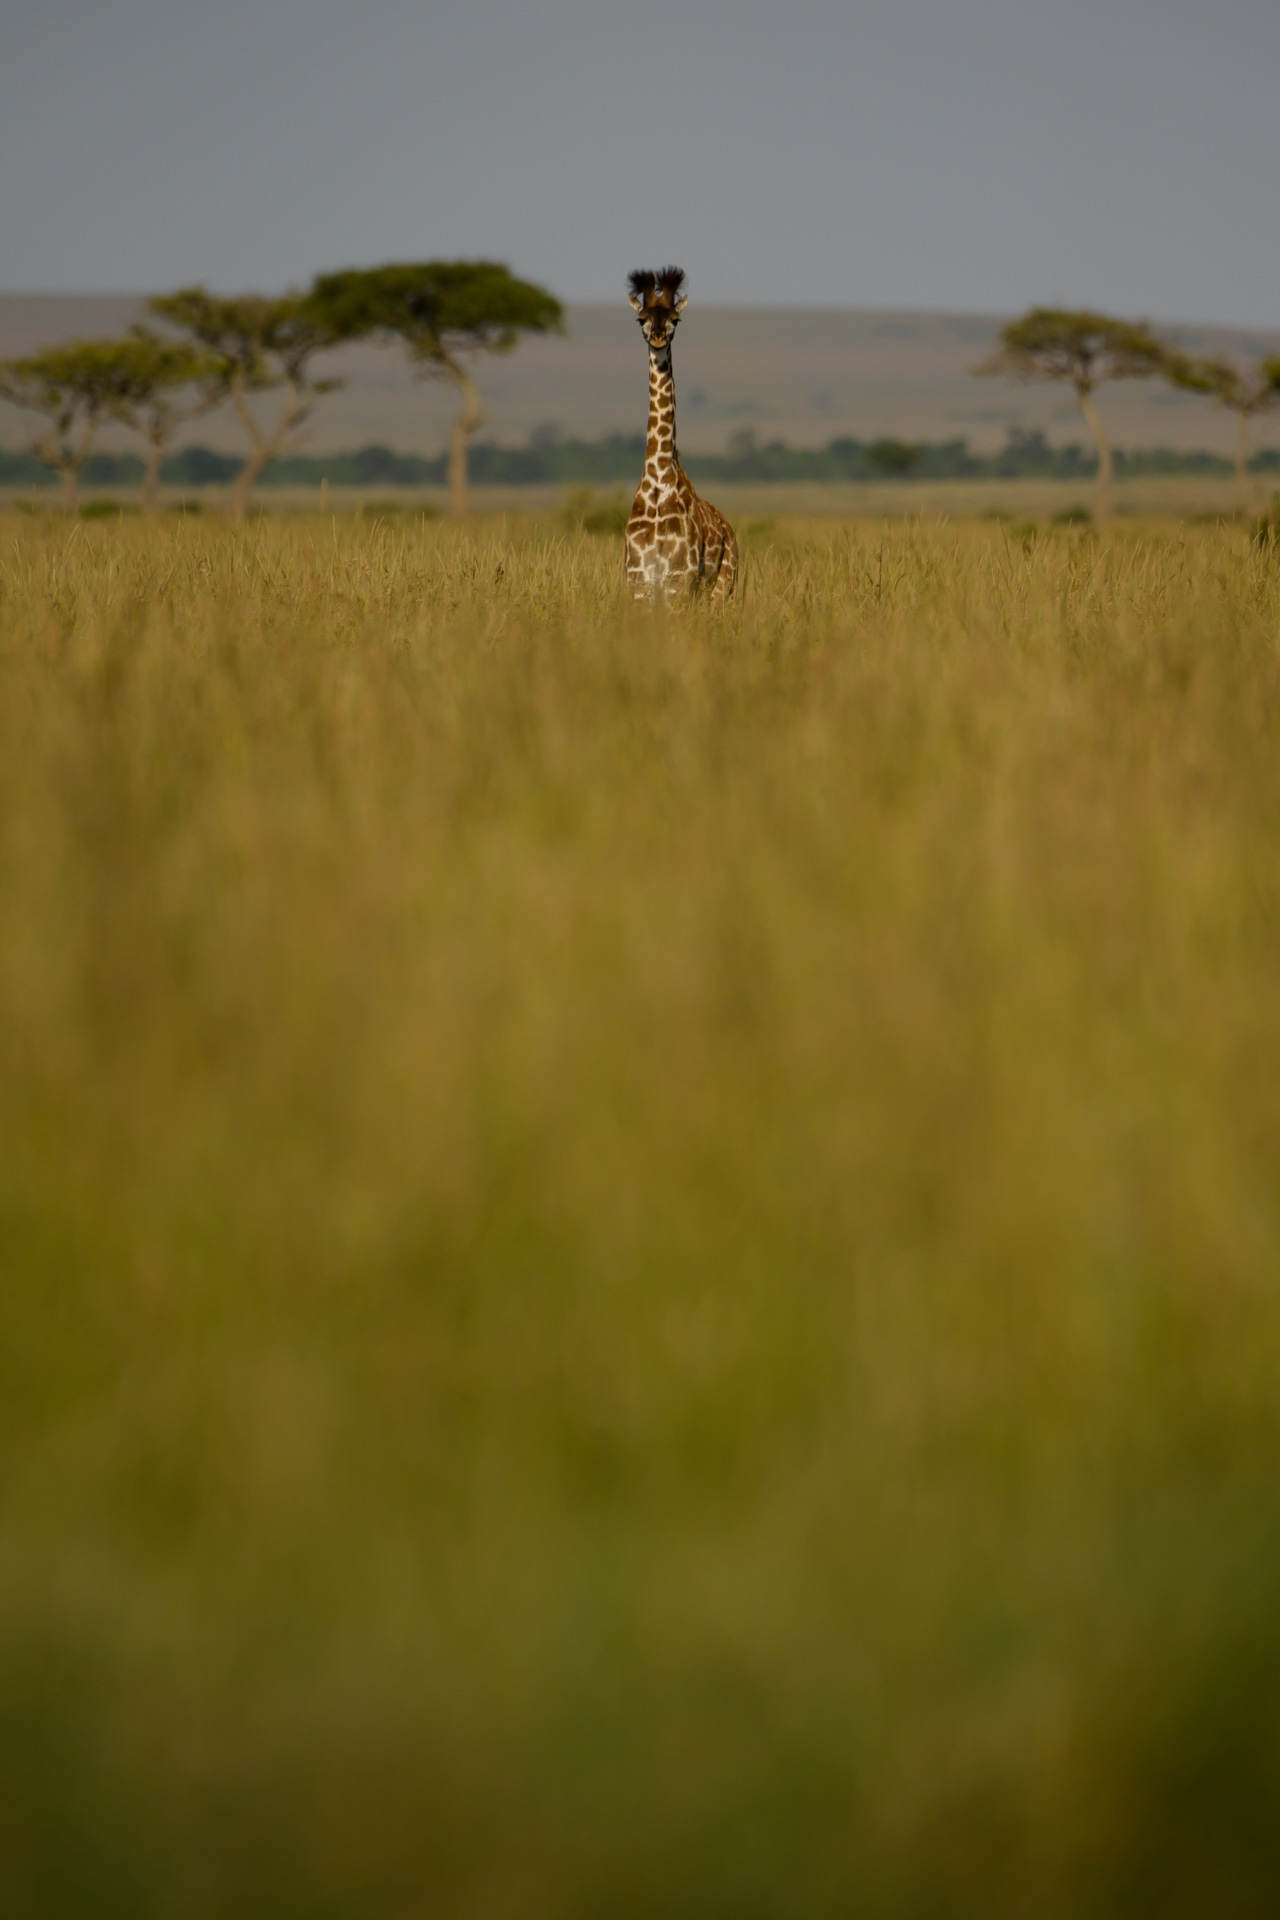 Giraffe in long grass